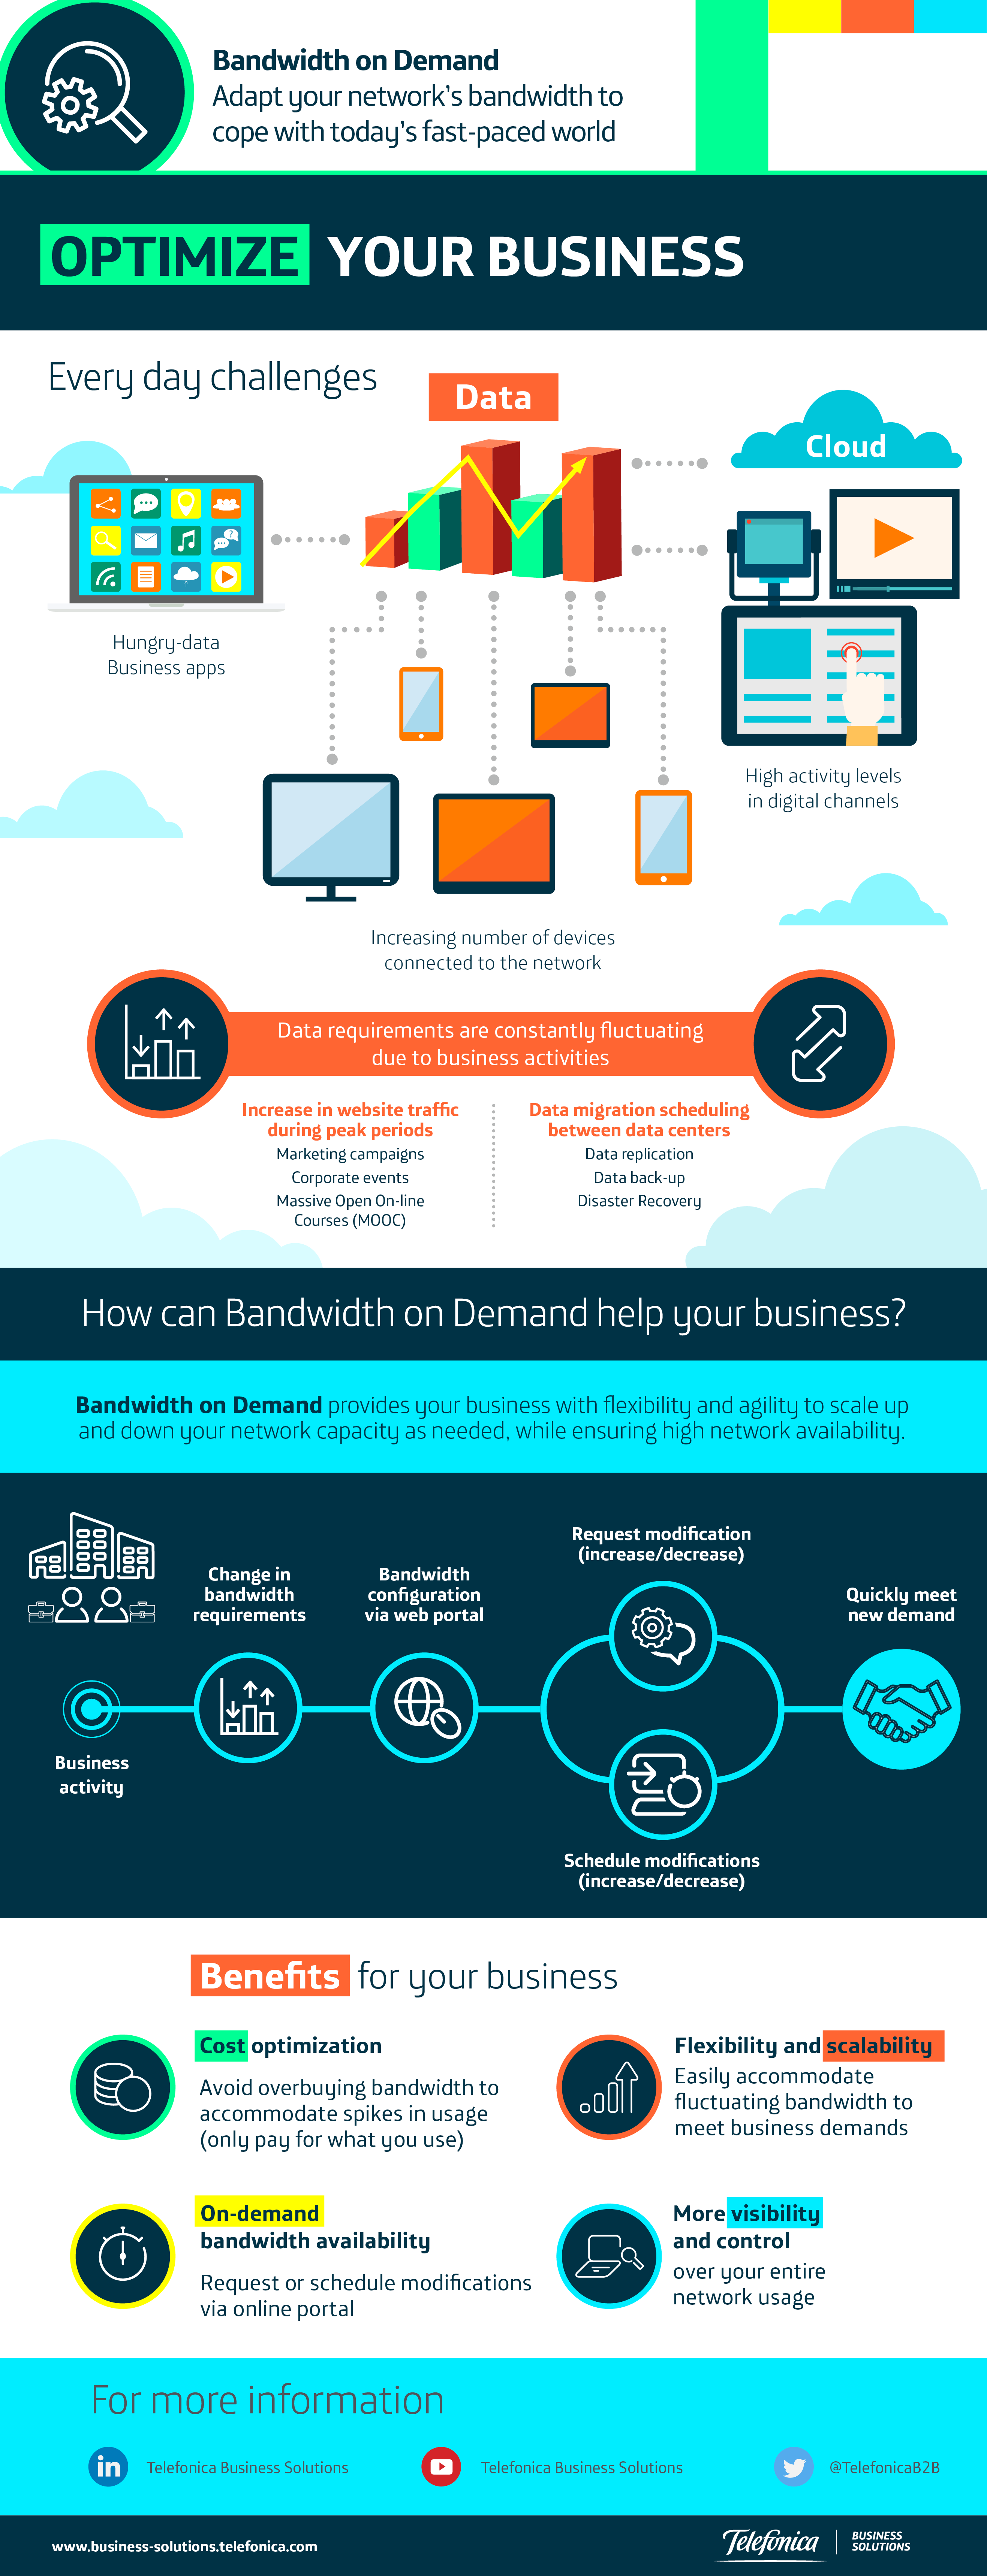 Bandwidth on Demand: Adapt your network's bandwidth to cope with today's fast-paced world